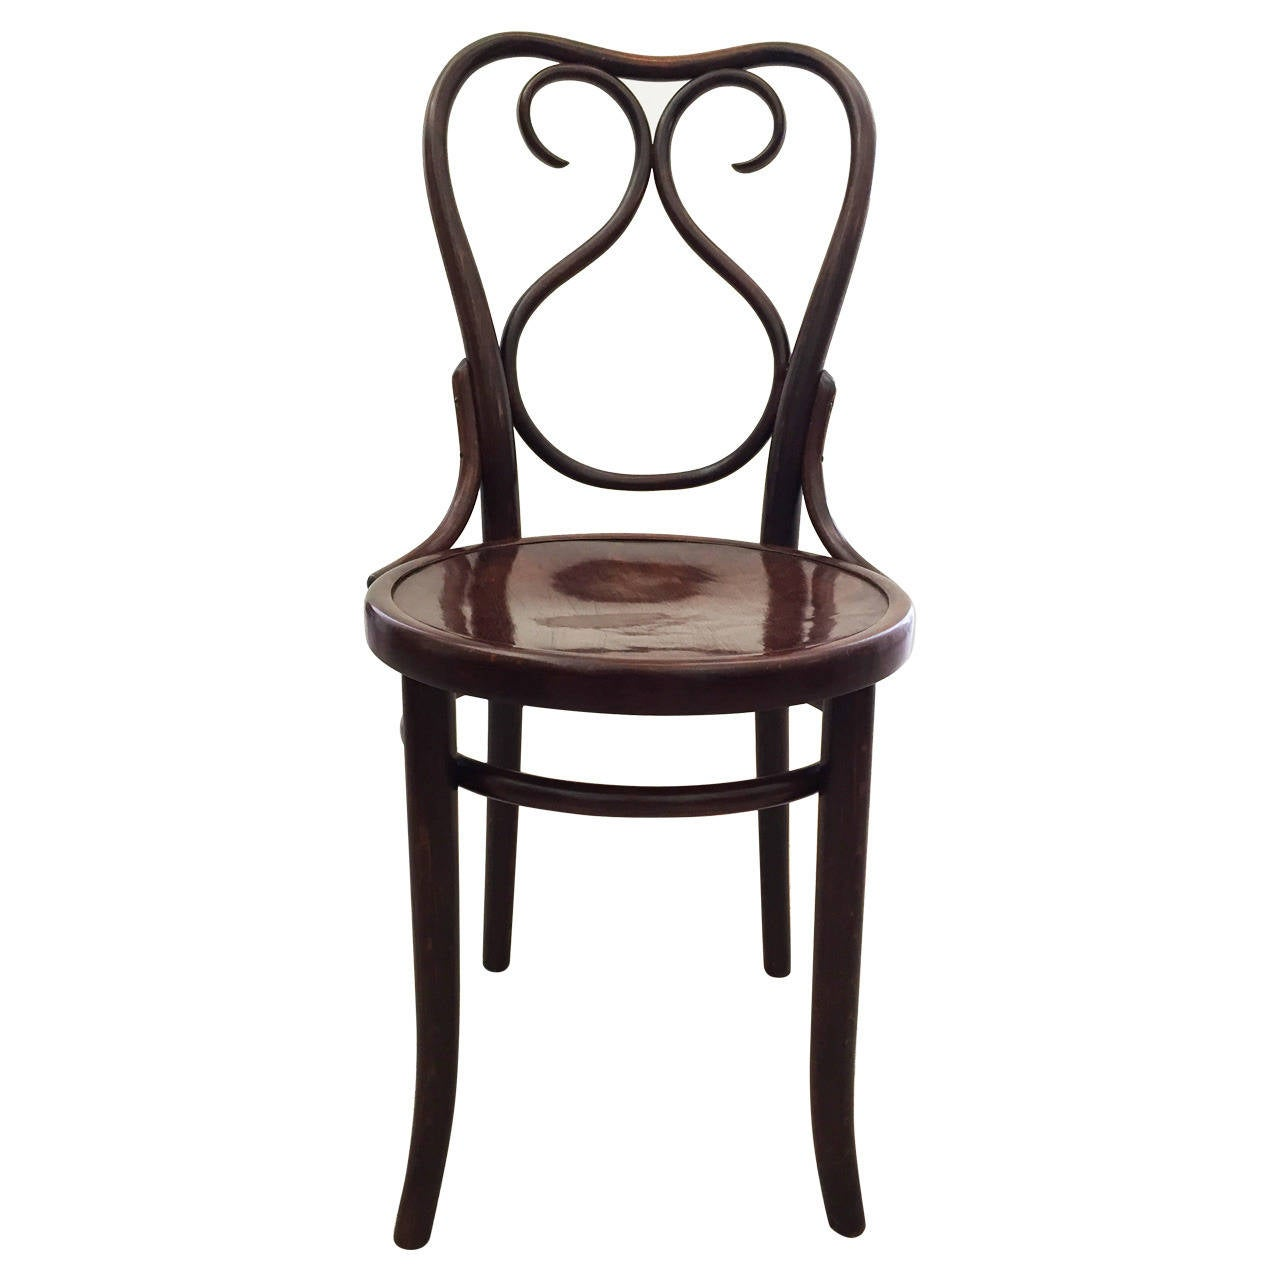 Thonet Chair Catolog Number 548 For Sale at 1stdibs